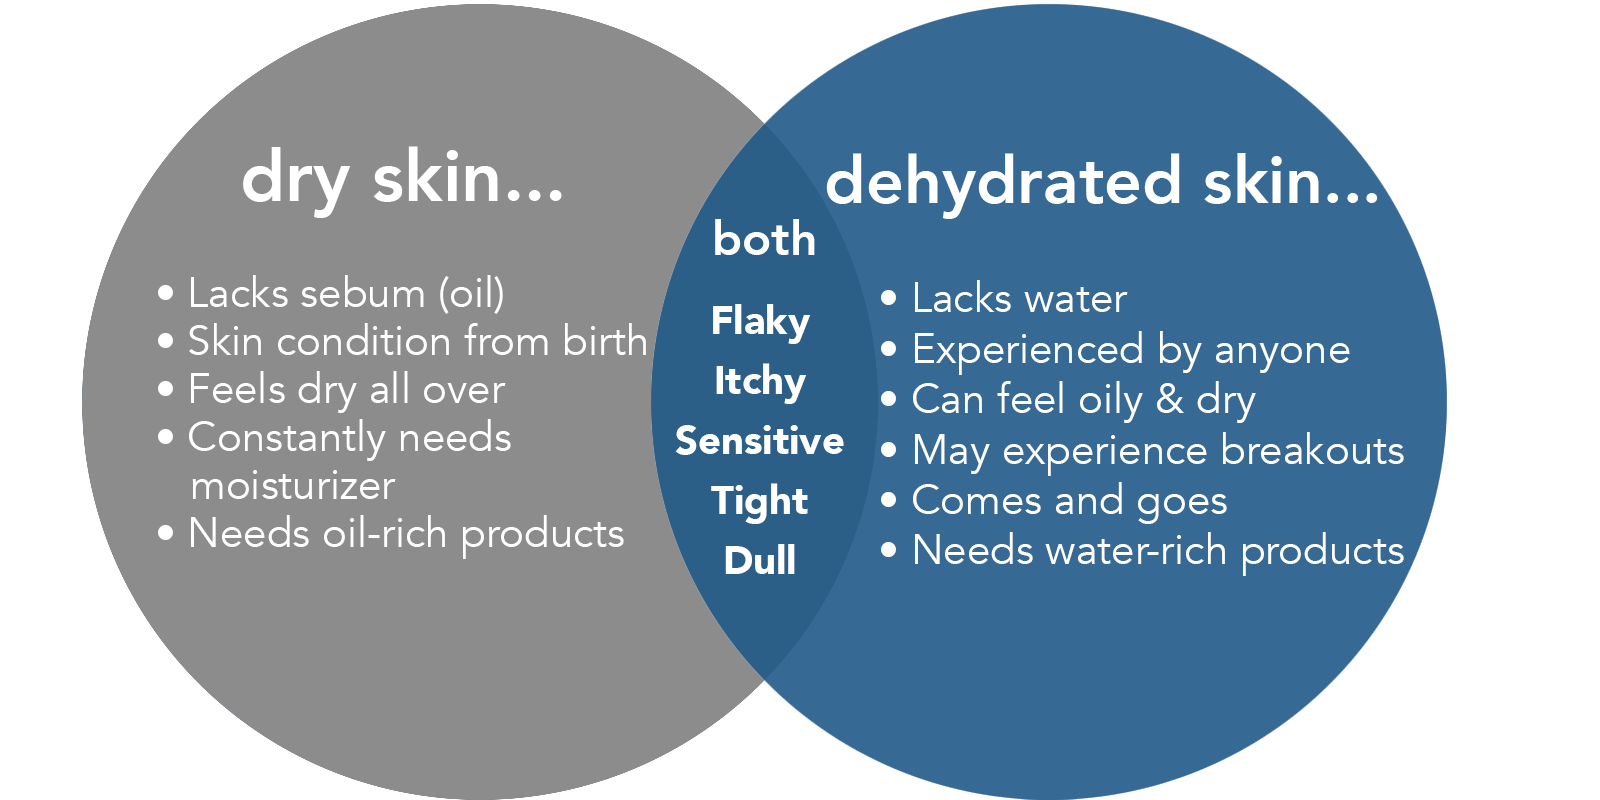 """Dehydration differs from """"dry"""" skin in that dehydration refers to a lack of water, whereas dryness refers to a lack of oil. In fact, dehydrated skin can also be """"oily"""" skin, as production of sebum is our bodies attempt to compensate for a lack of water."""